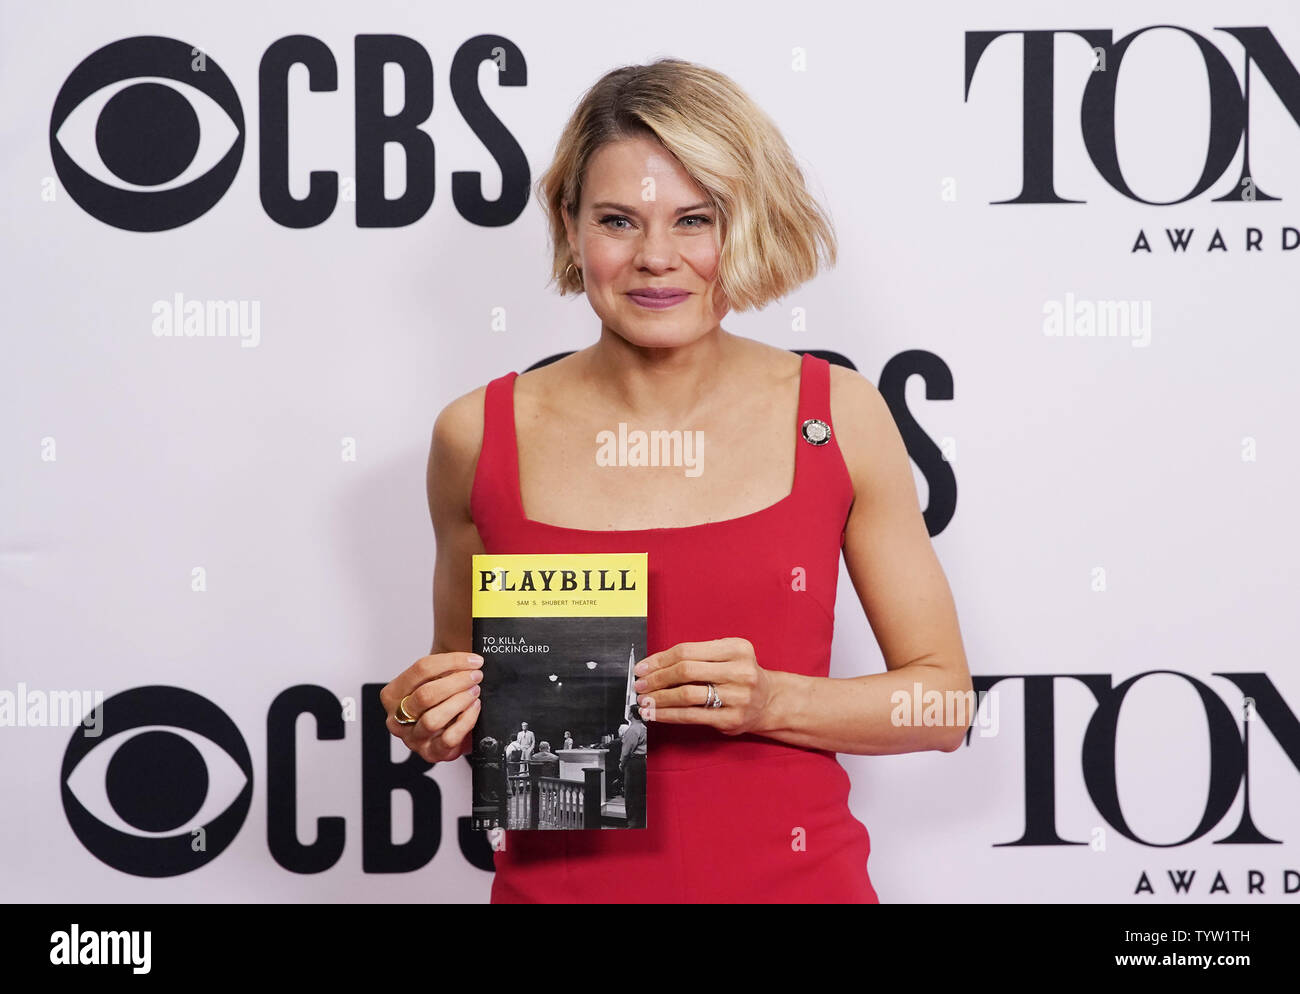 Celia Keenan-Bolger arrives on the red carpet at The 73rd Annual Tony Awards Meet The Nominees Press Day on May 01, 2019 in New York City.   Photo by John Angelillo/UPI - Stock Image